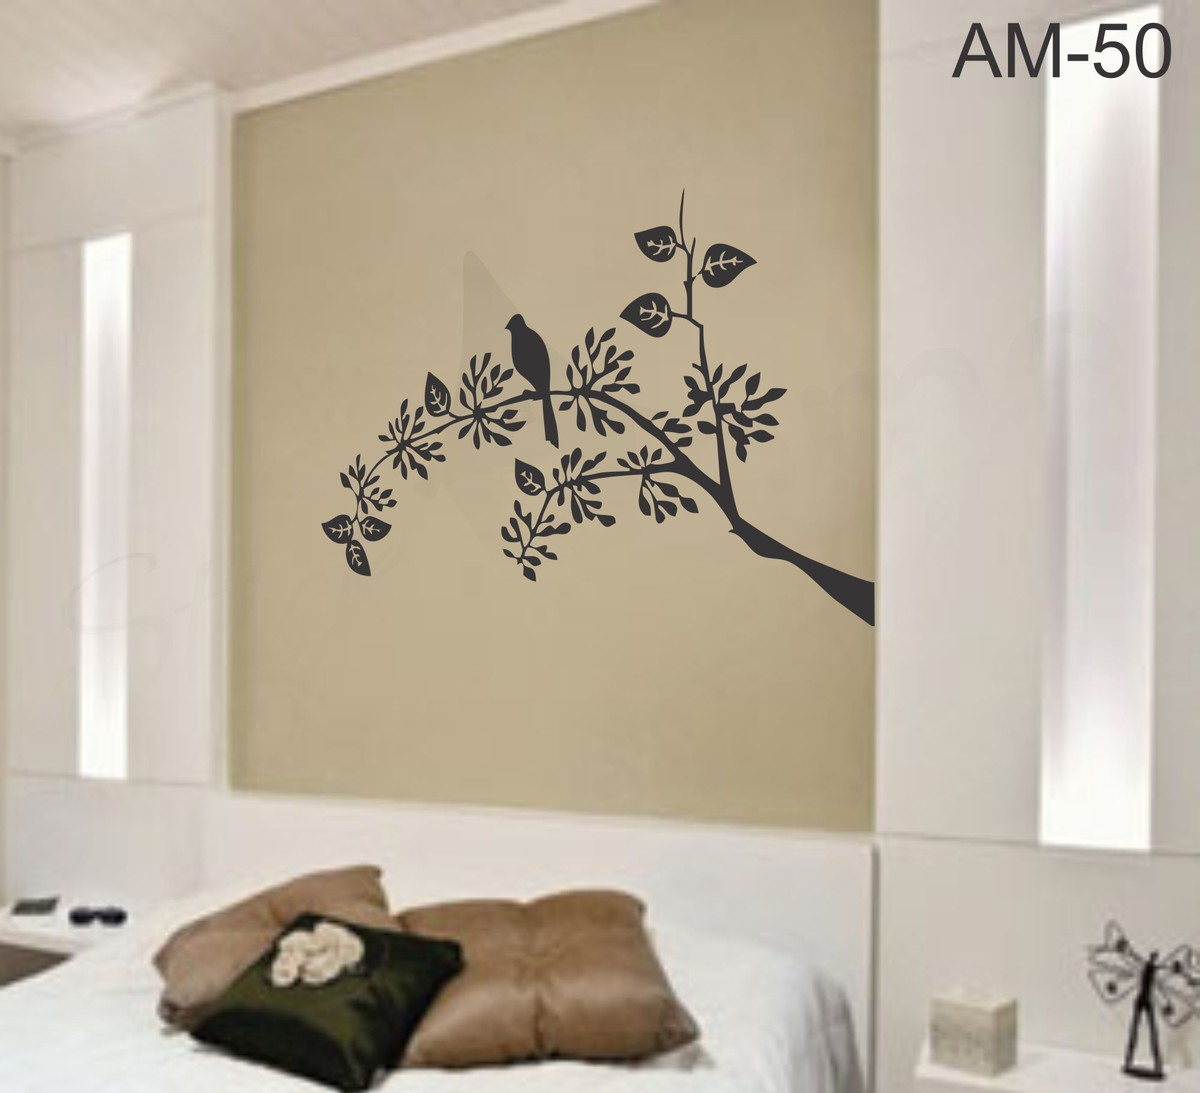 Adesivo decorativo de parede am50 stick home adesivos for Papel de pared decorativo